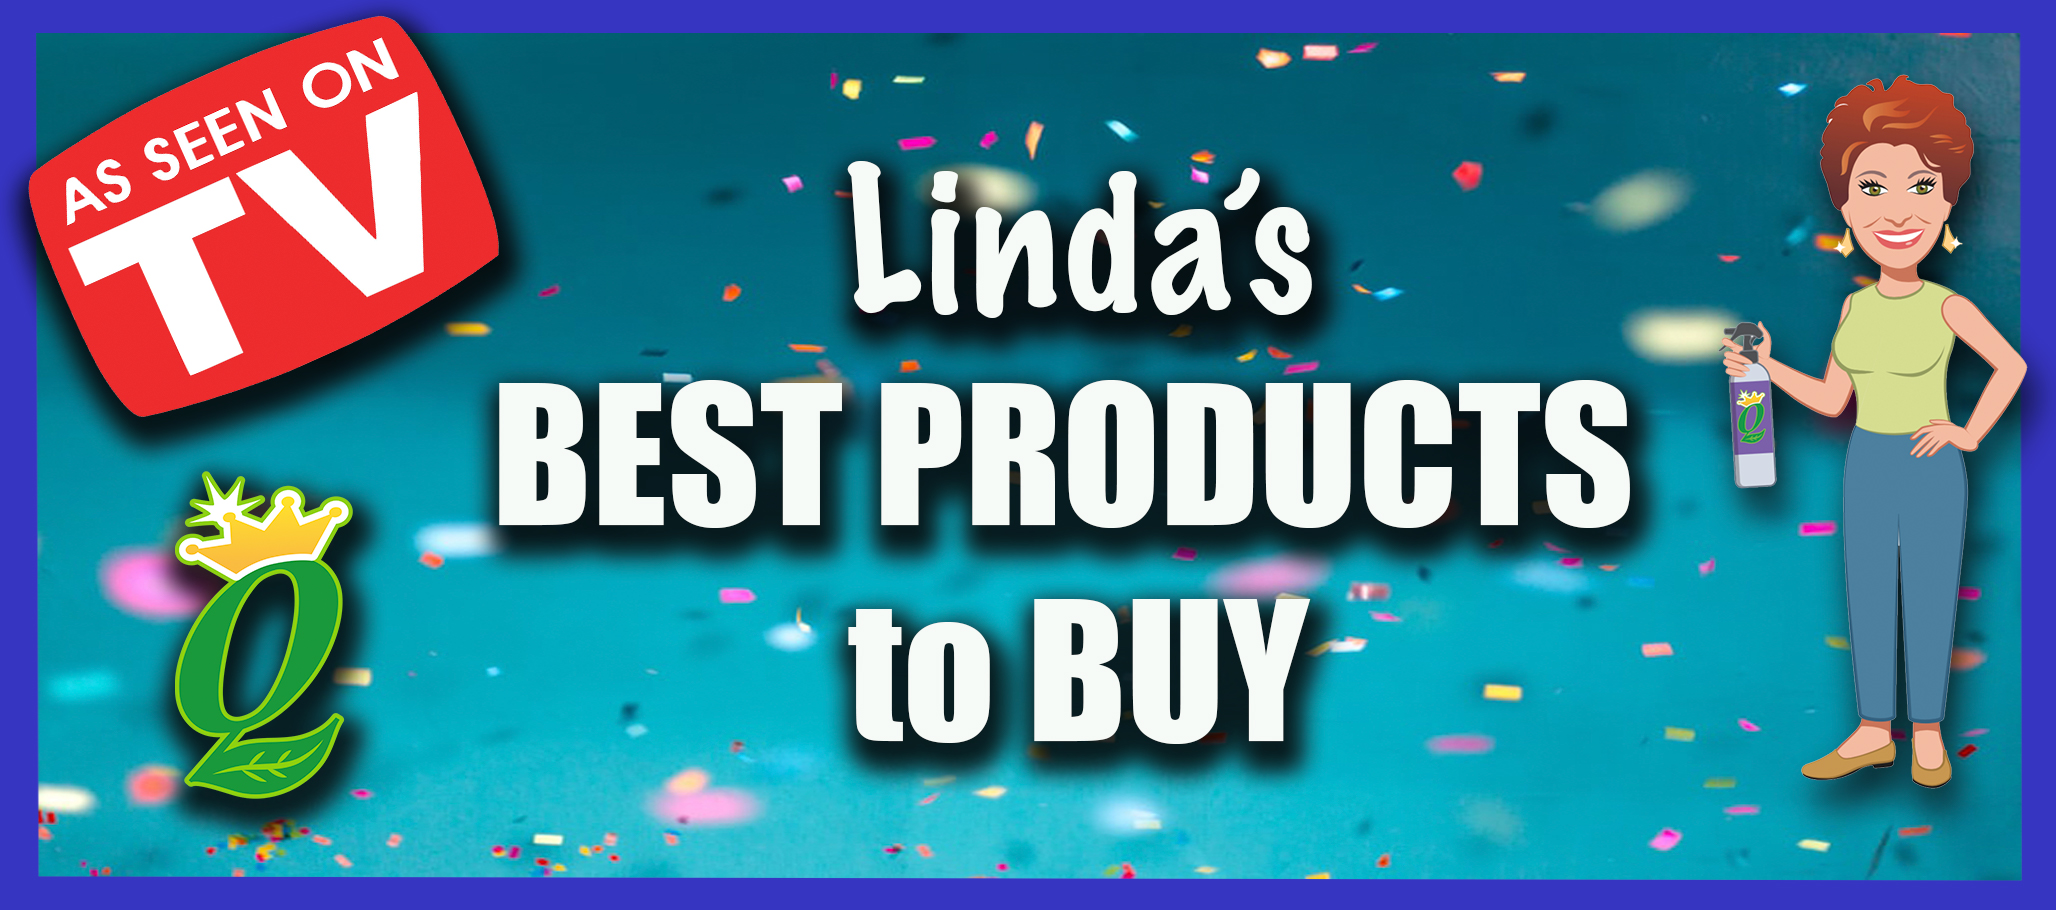 Best_Products_to_Buy